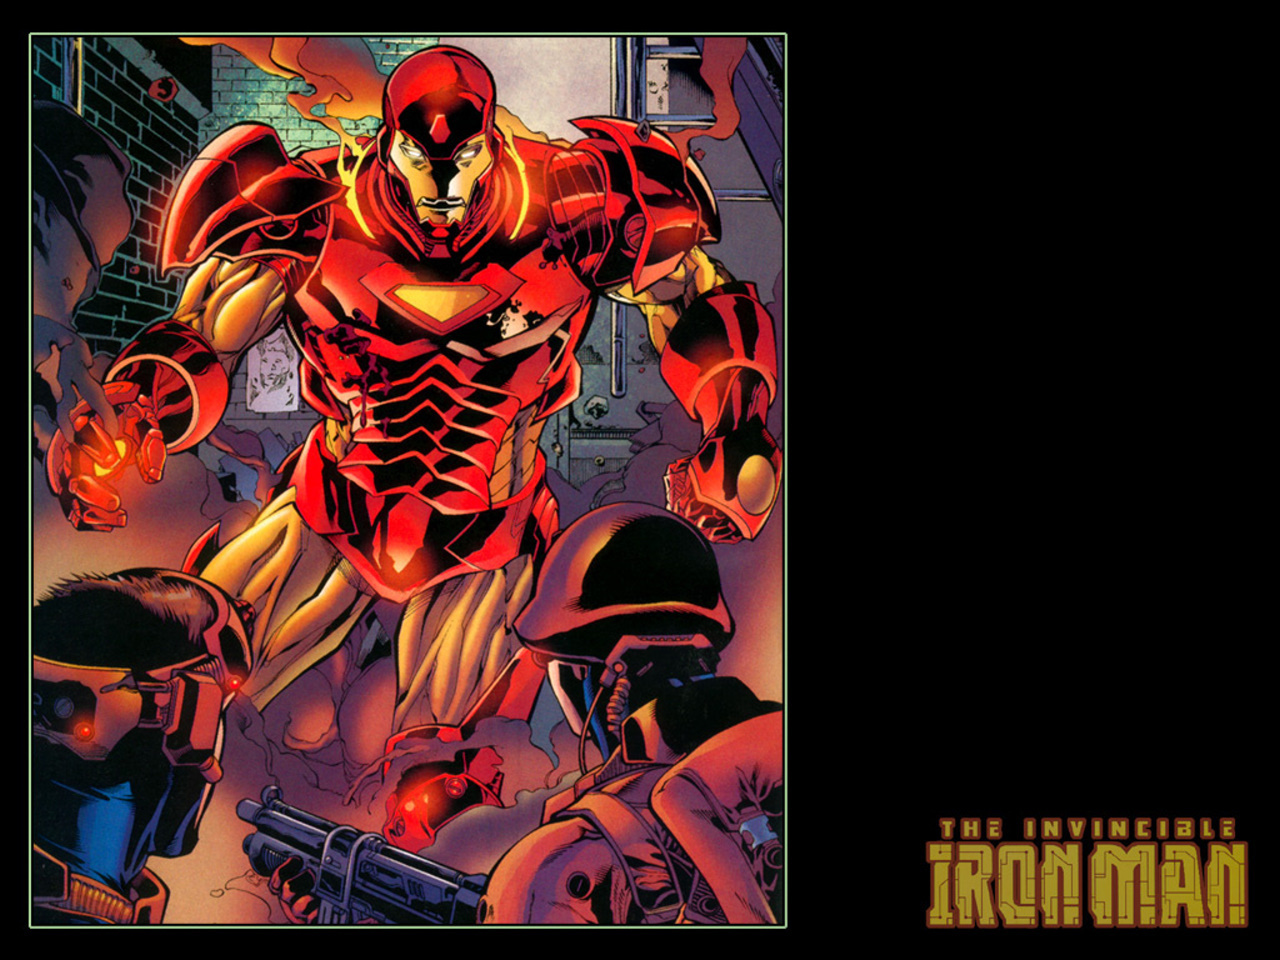 Marvel Comics Images Ironman Hd Wallpaper And Background Photos